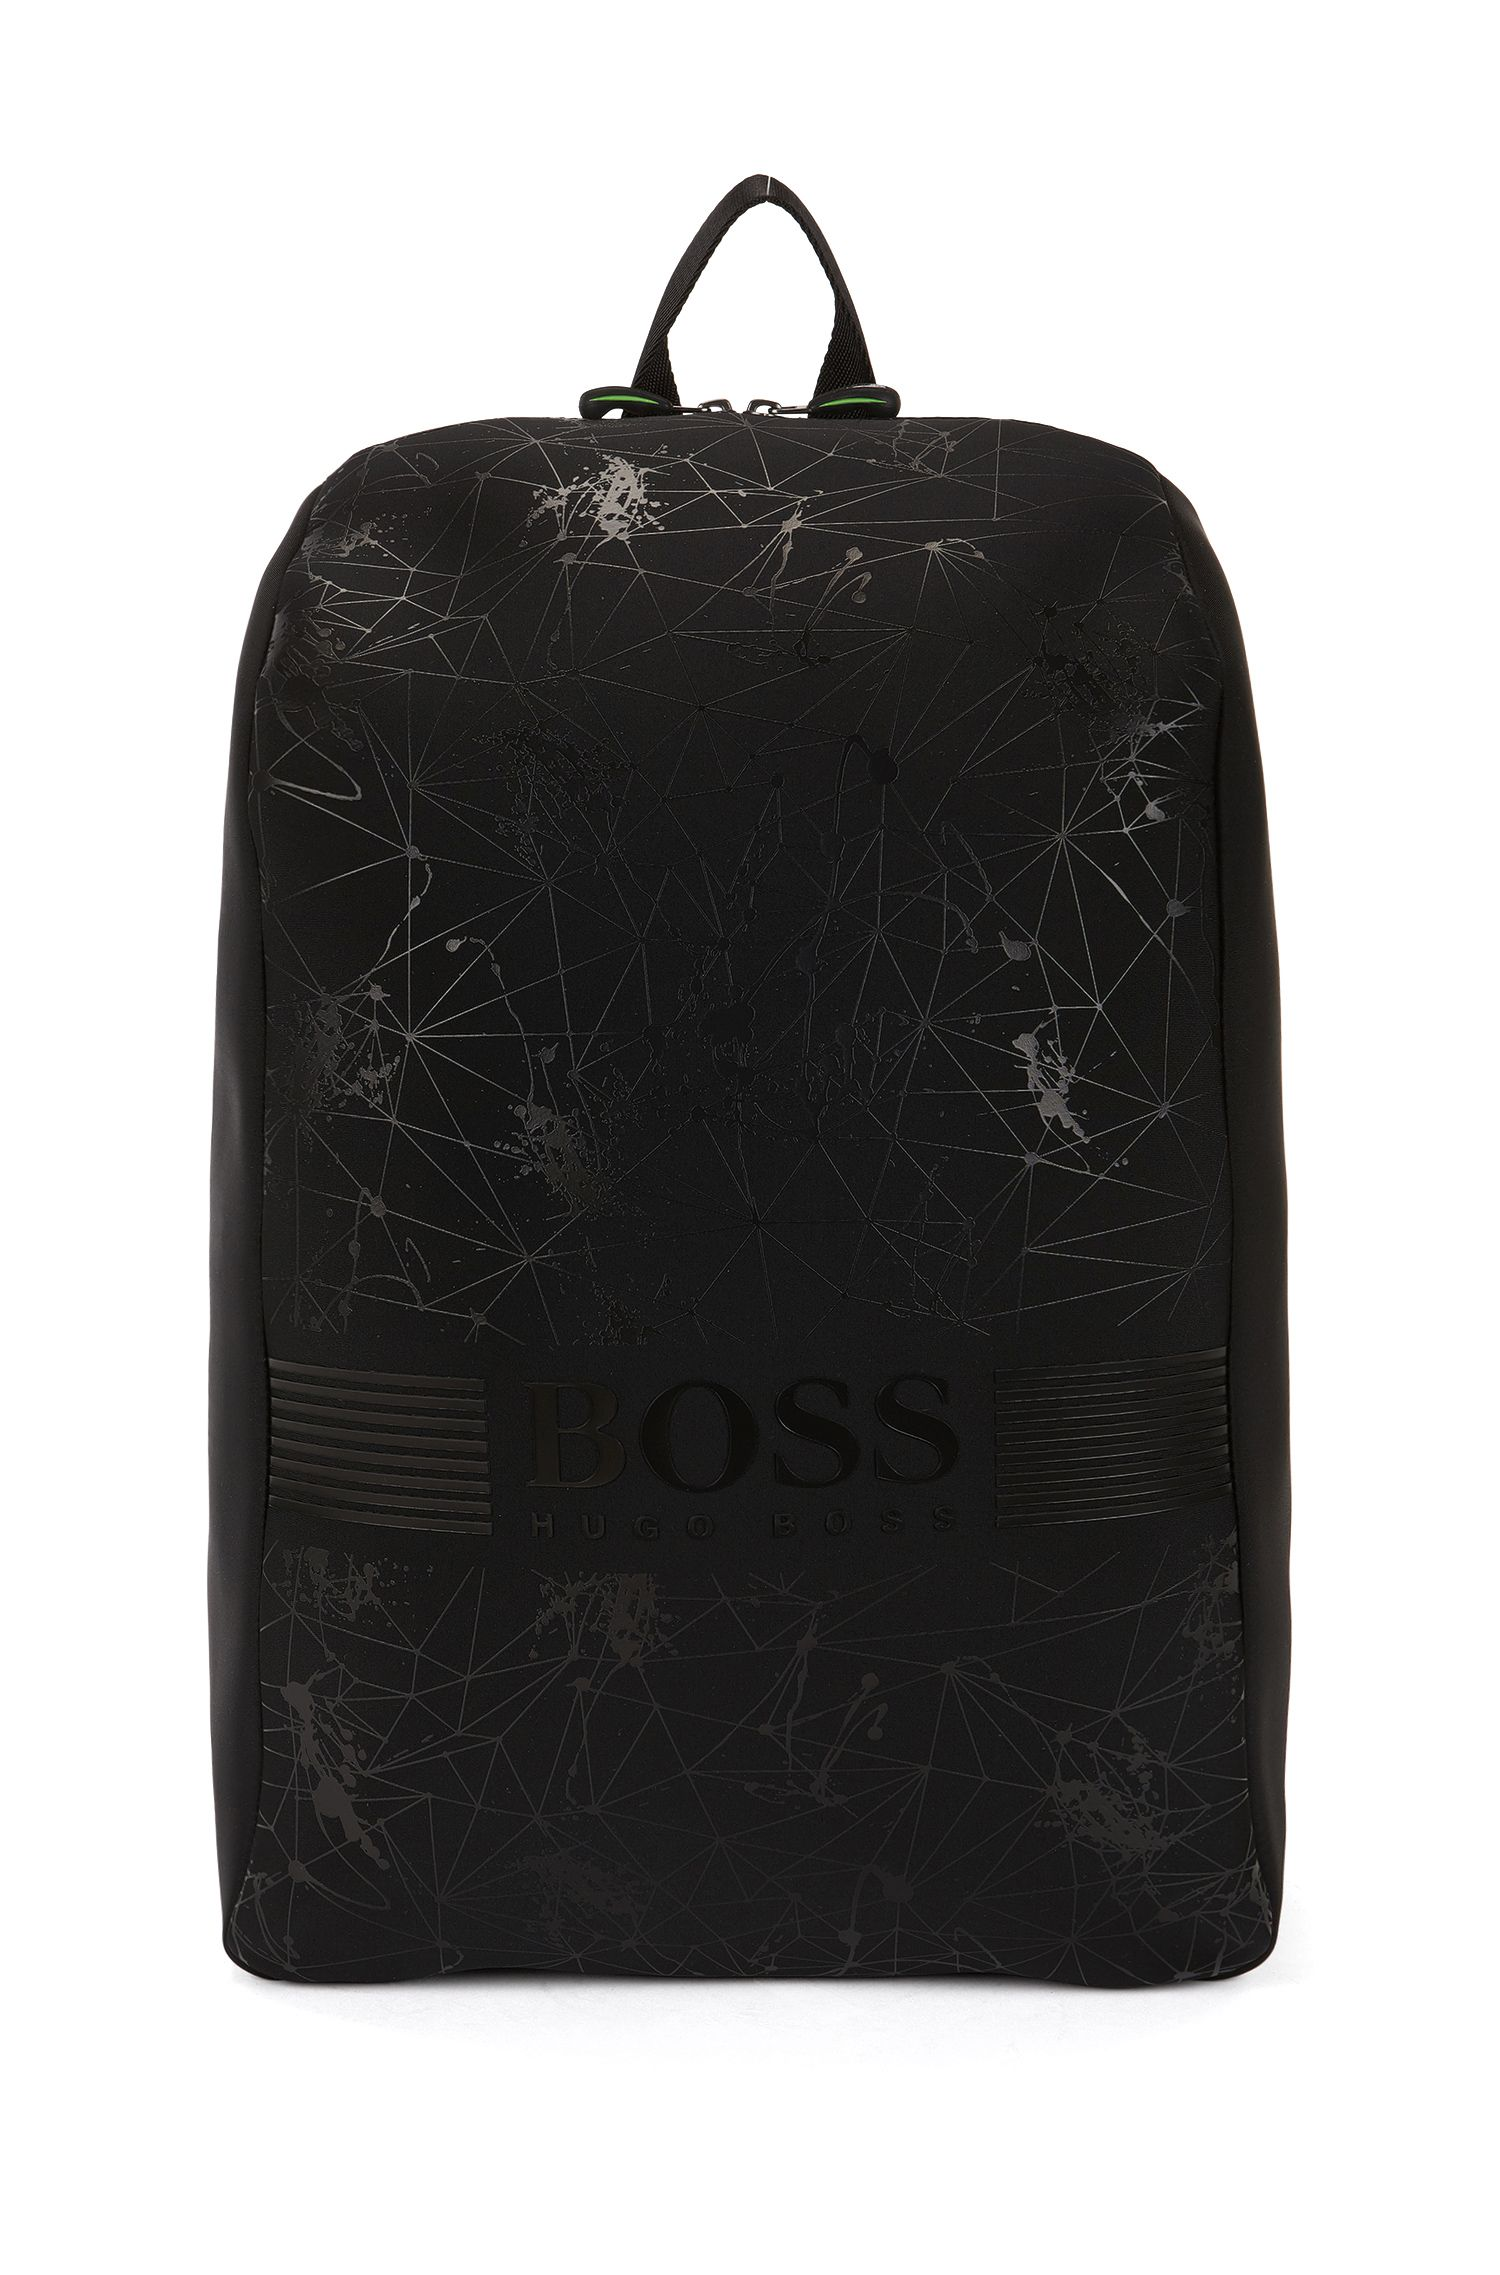 Graphic-print neoprene backpack